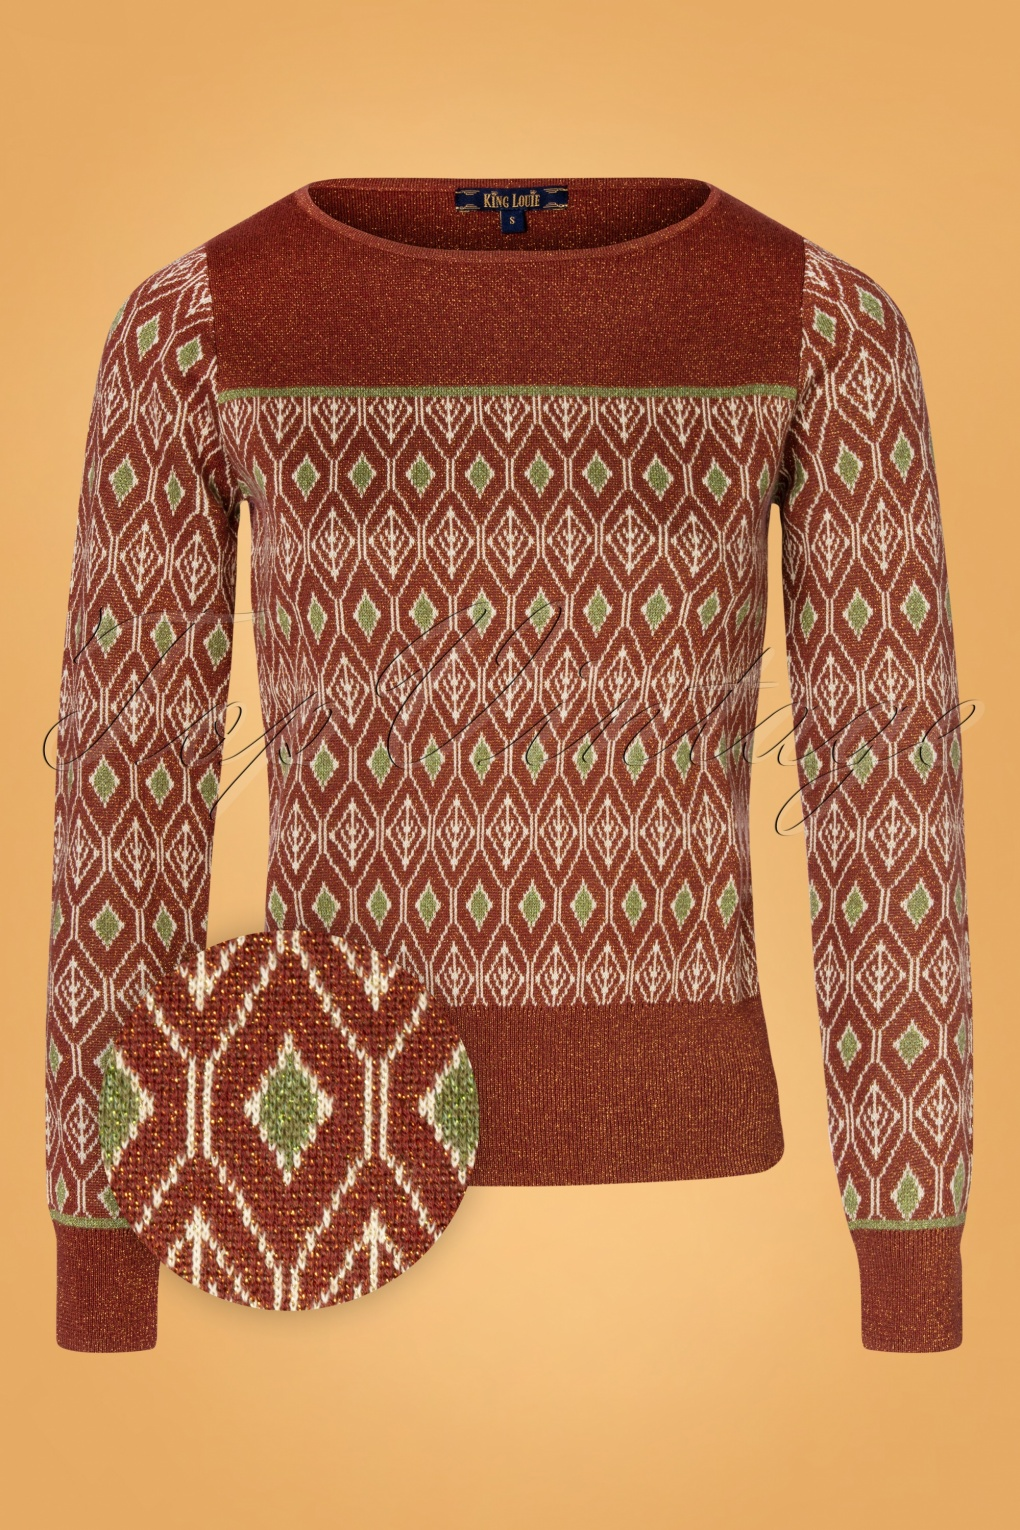 Vintage Sweaters, Retro Sweaters & Cardigan 60s Bella Taboo Knit Top in Henna Red £68.15 AT vintagedancer.com